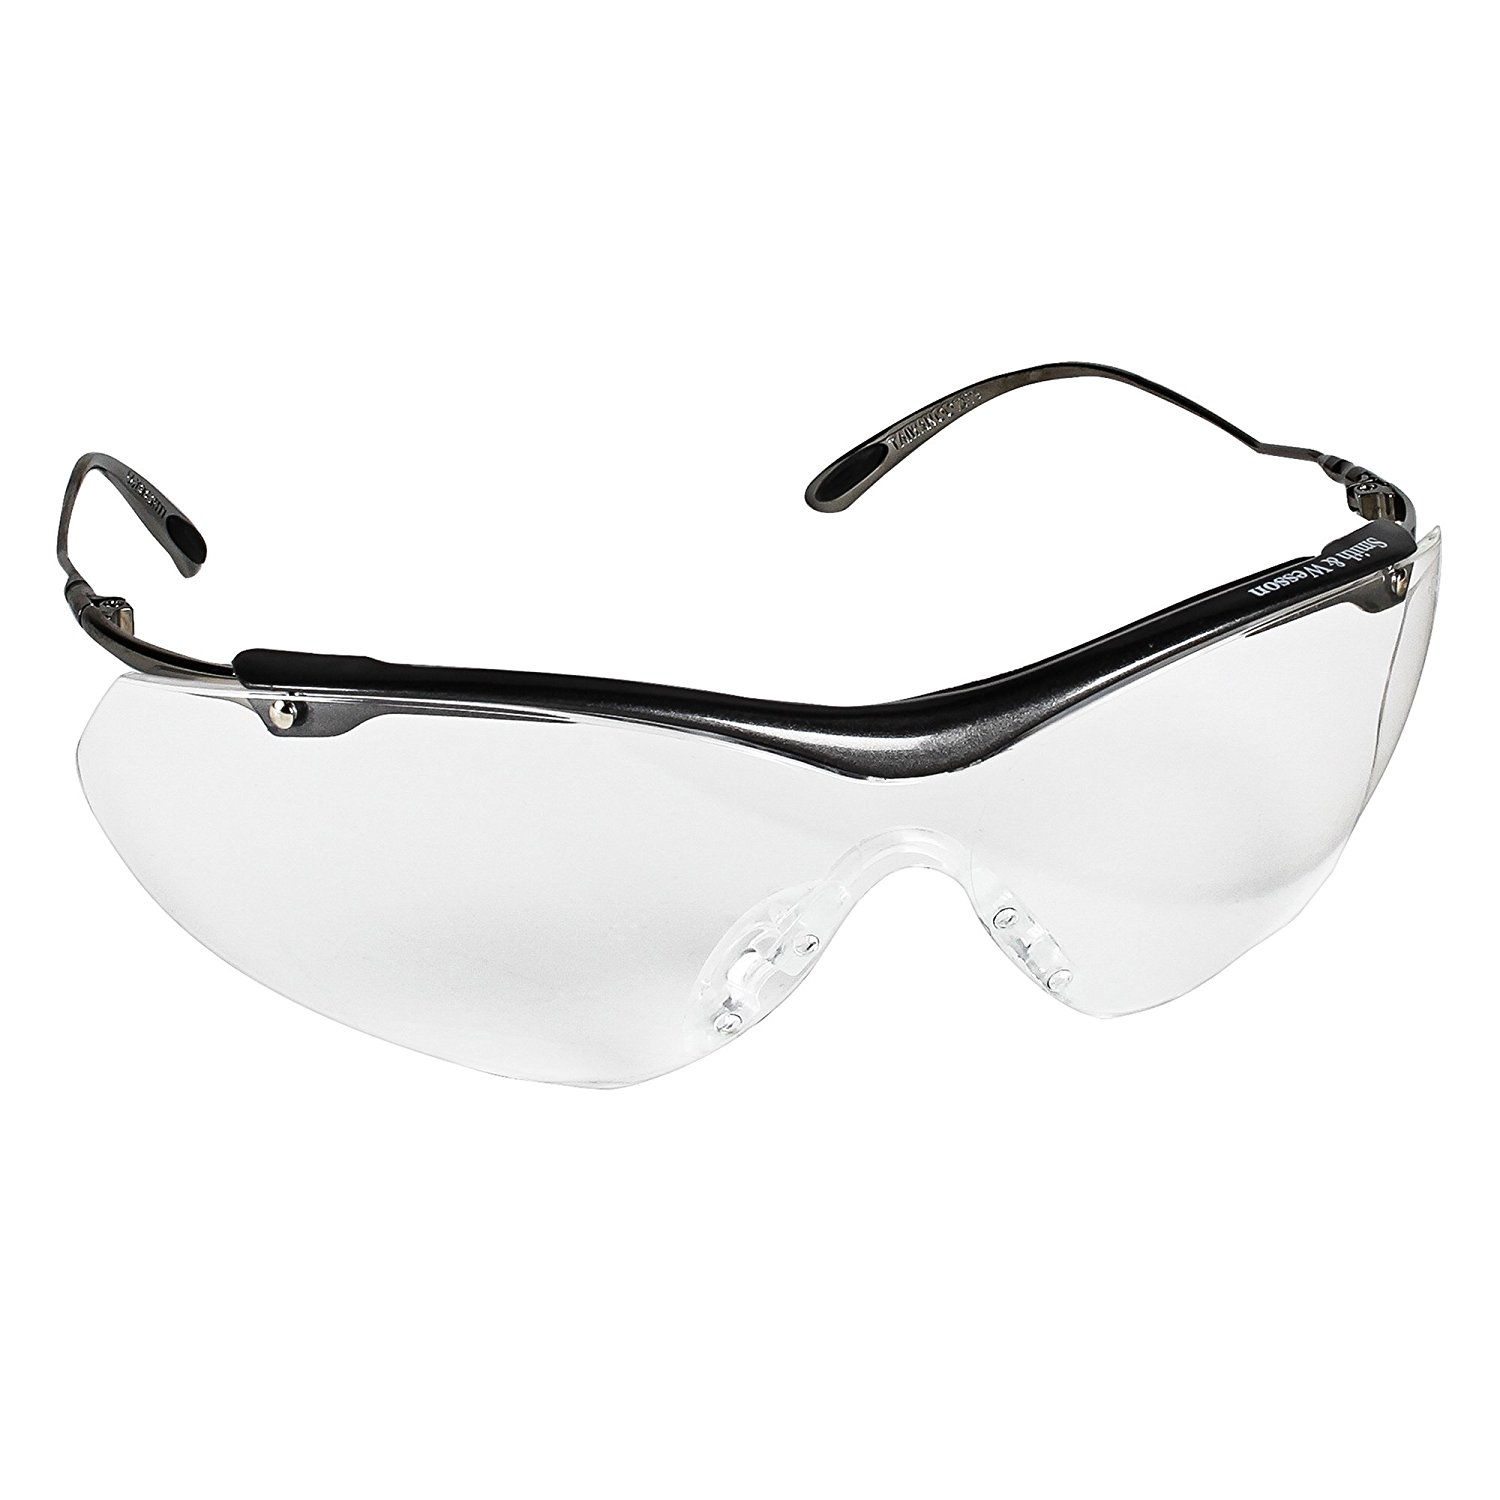 Smith & Wesson Sigma Safety Glasses (20350), Clear Lenses, Gunmetal Grey Frame, 12 Pairs